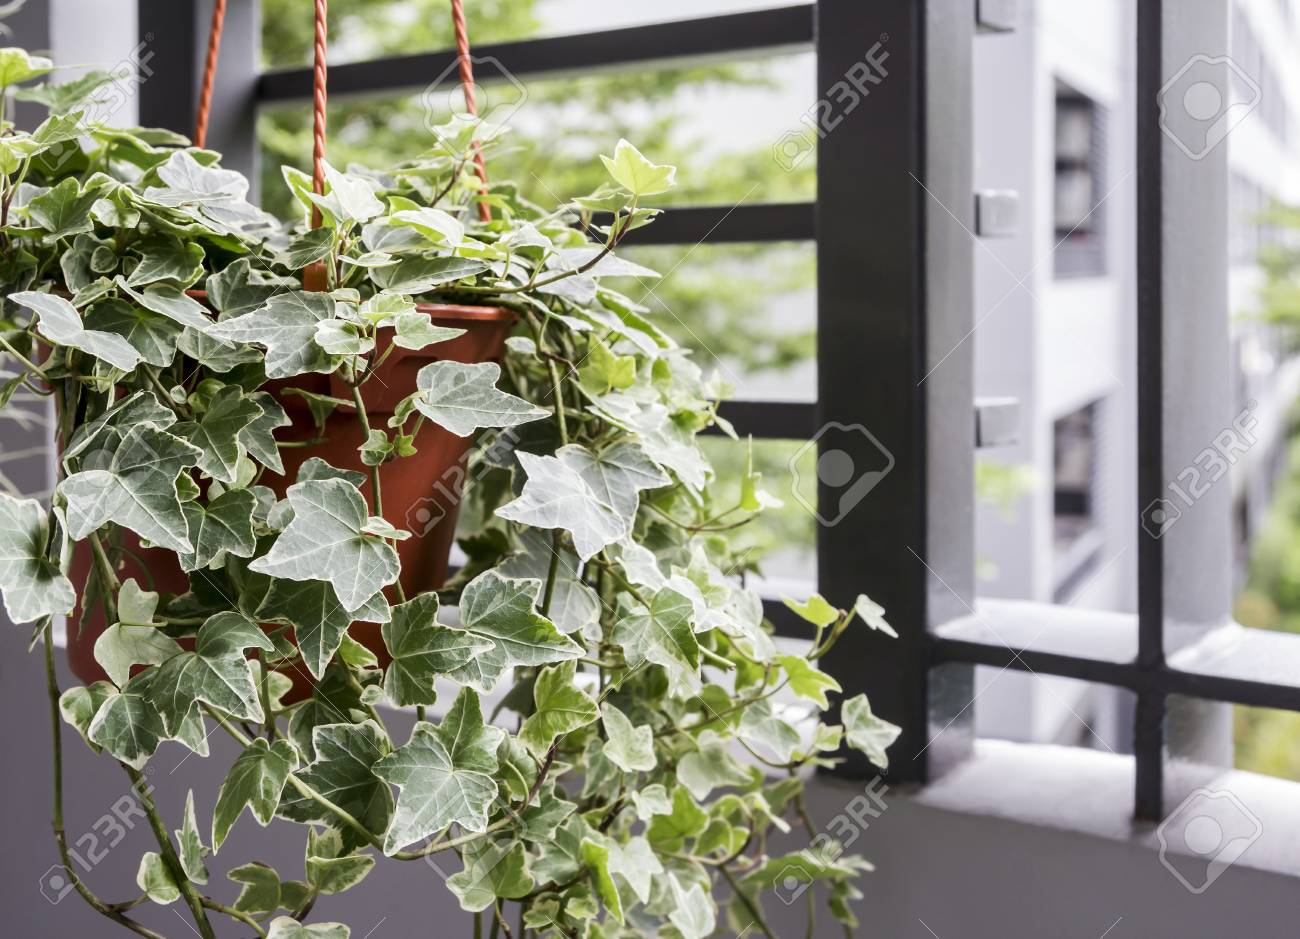 Home and garden concept of english ivy plant in pot on the balcony - 95085964